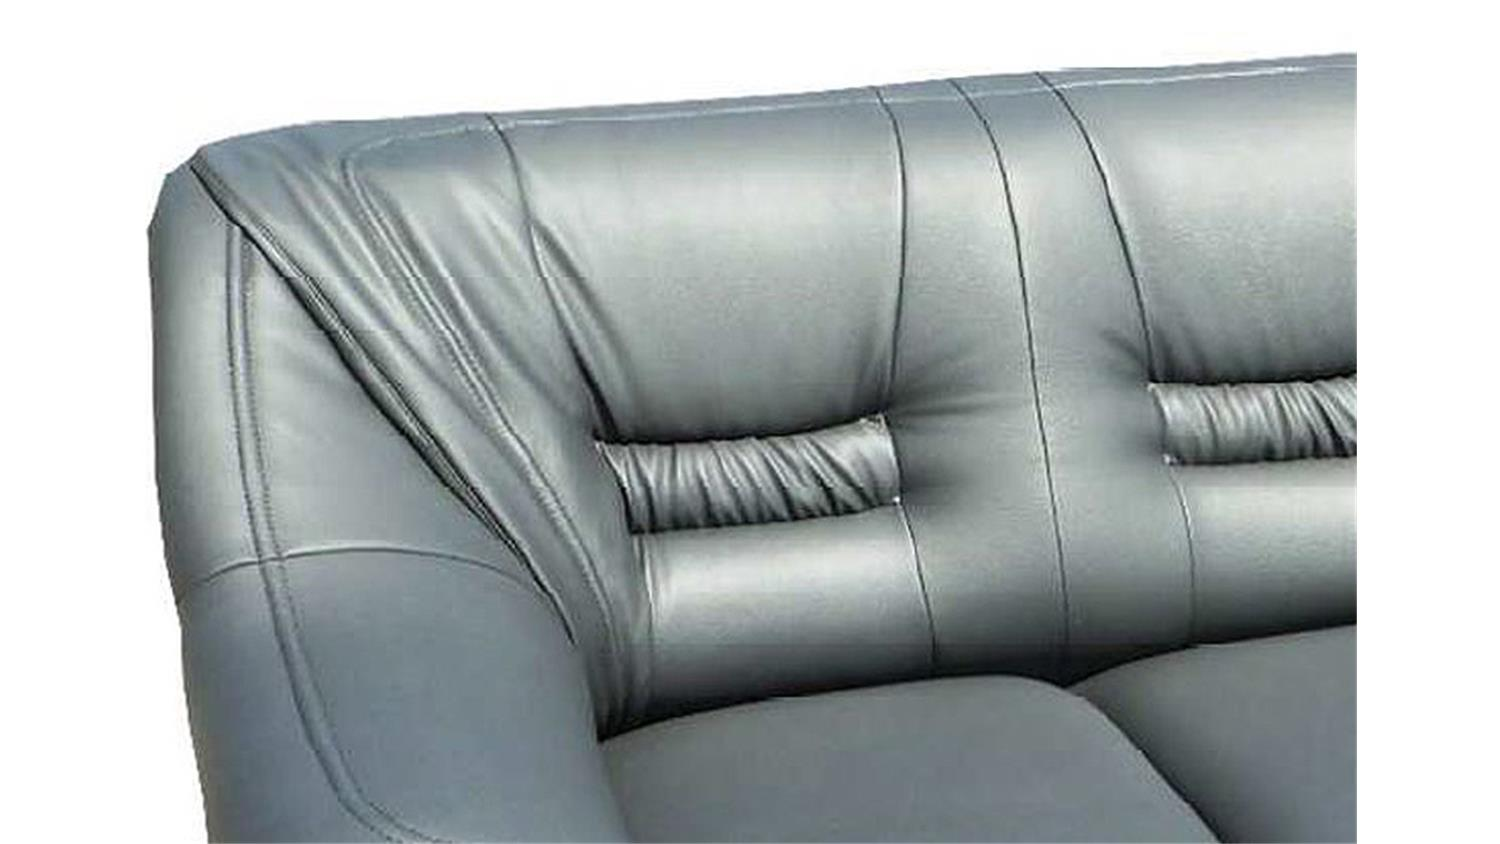 Sofa milano 3 sitzer couch polsterm bel in grau 200 cm for Couch 200 cm